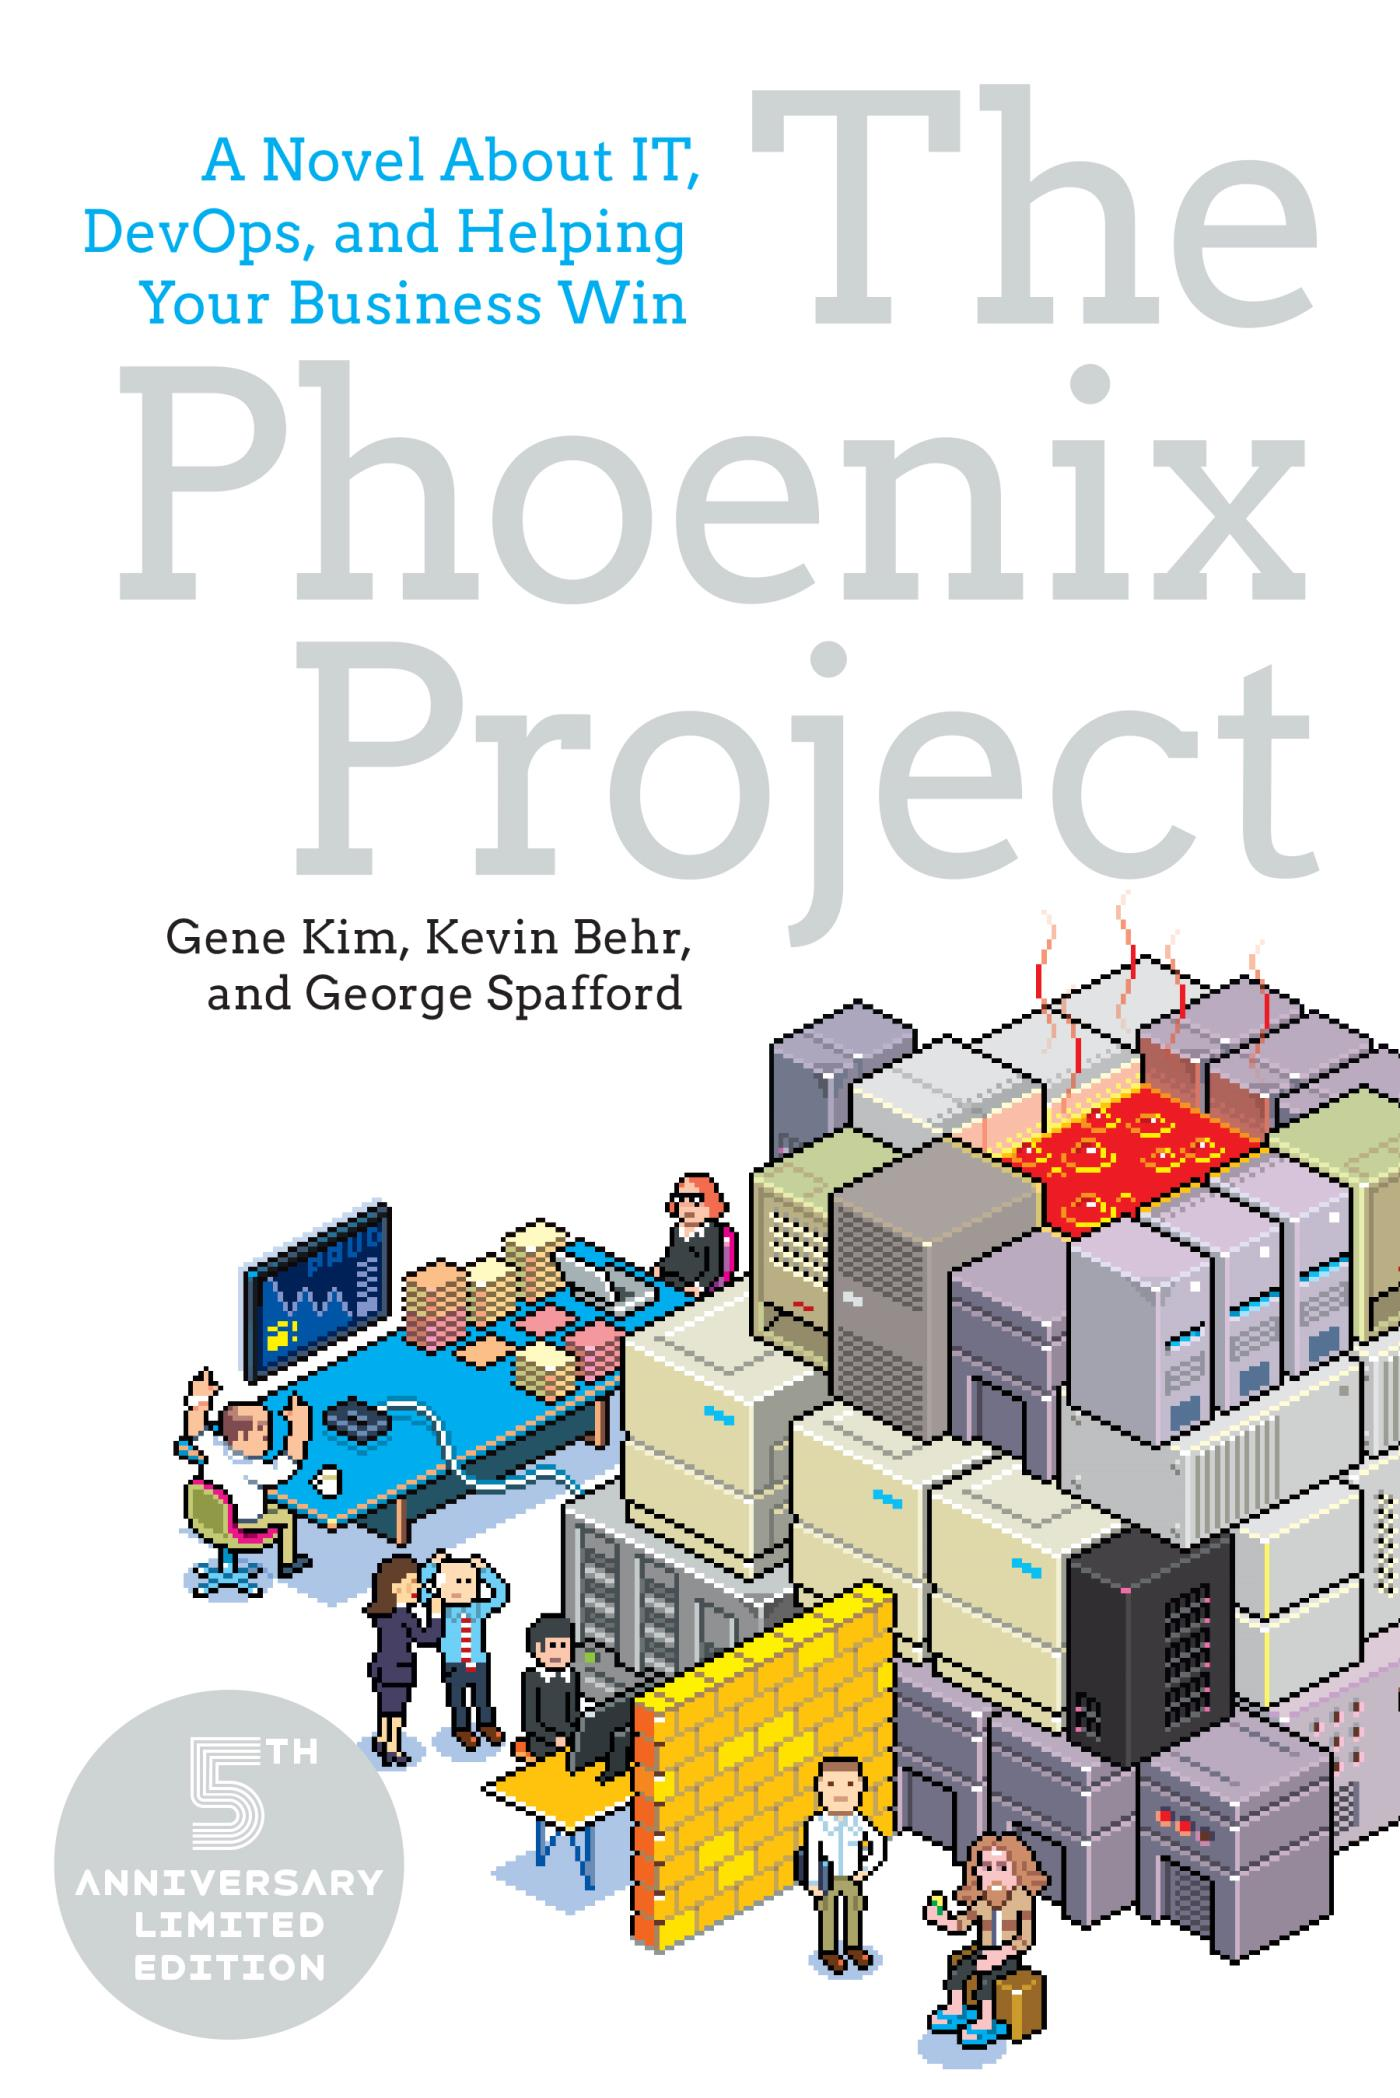 Download Ebook The Phoenix Project (3rd ed.) by Gene Kim Pdf